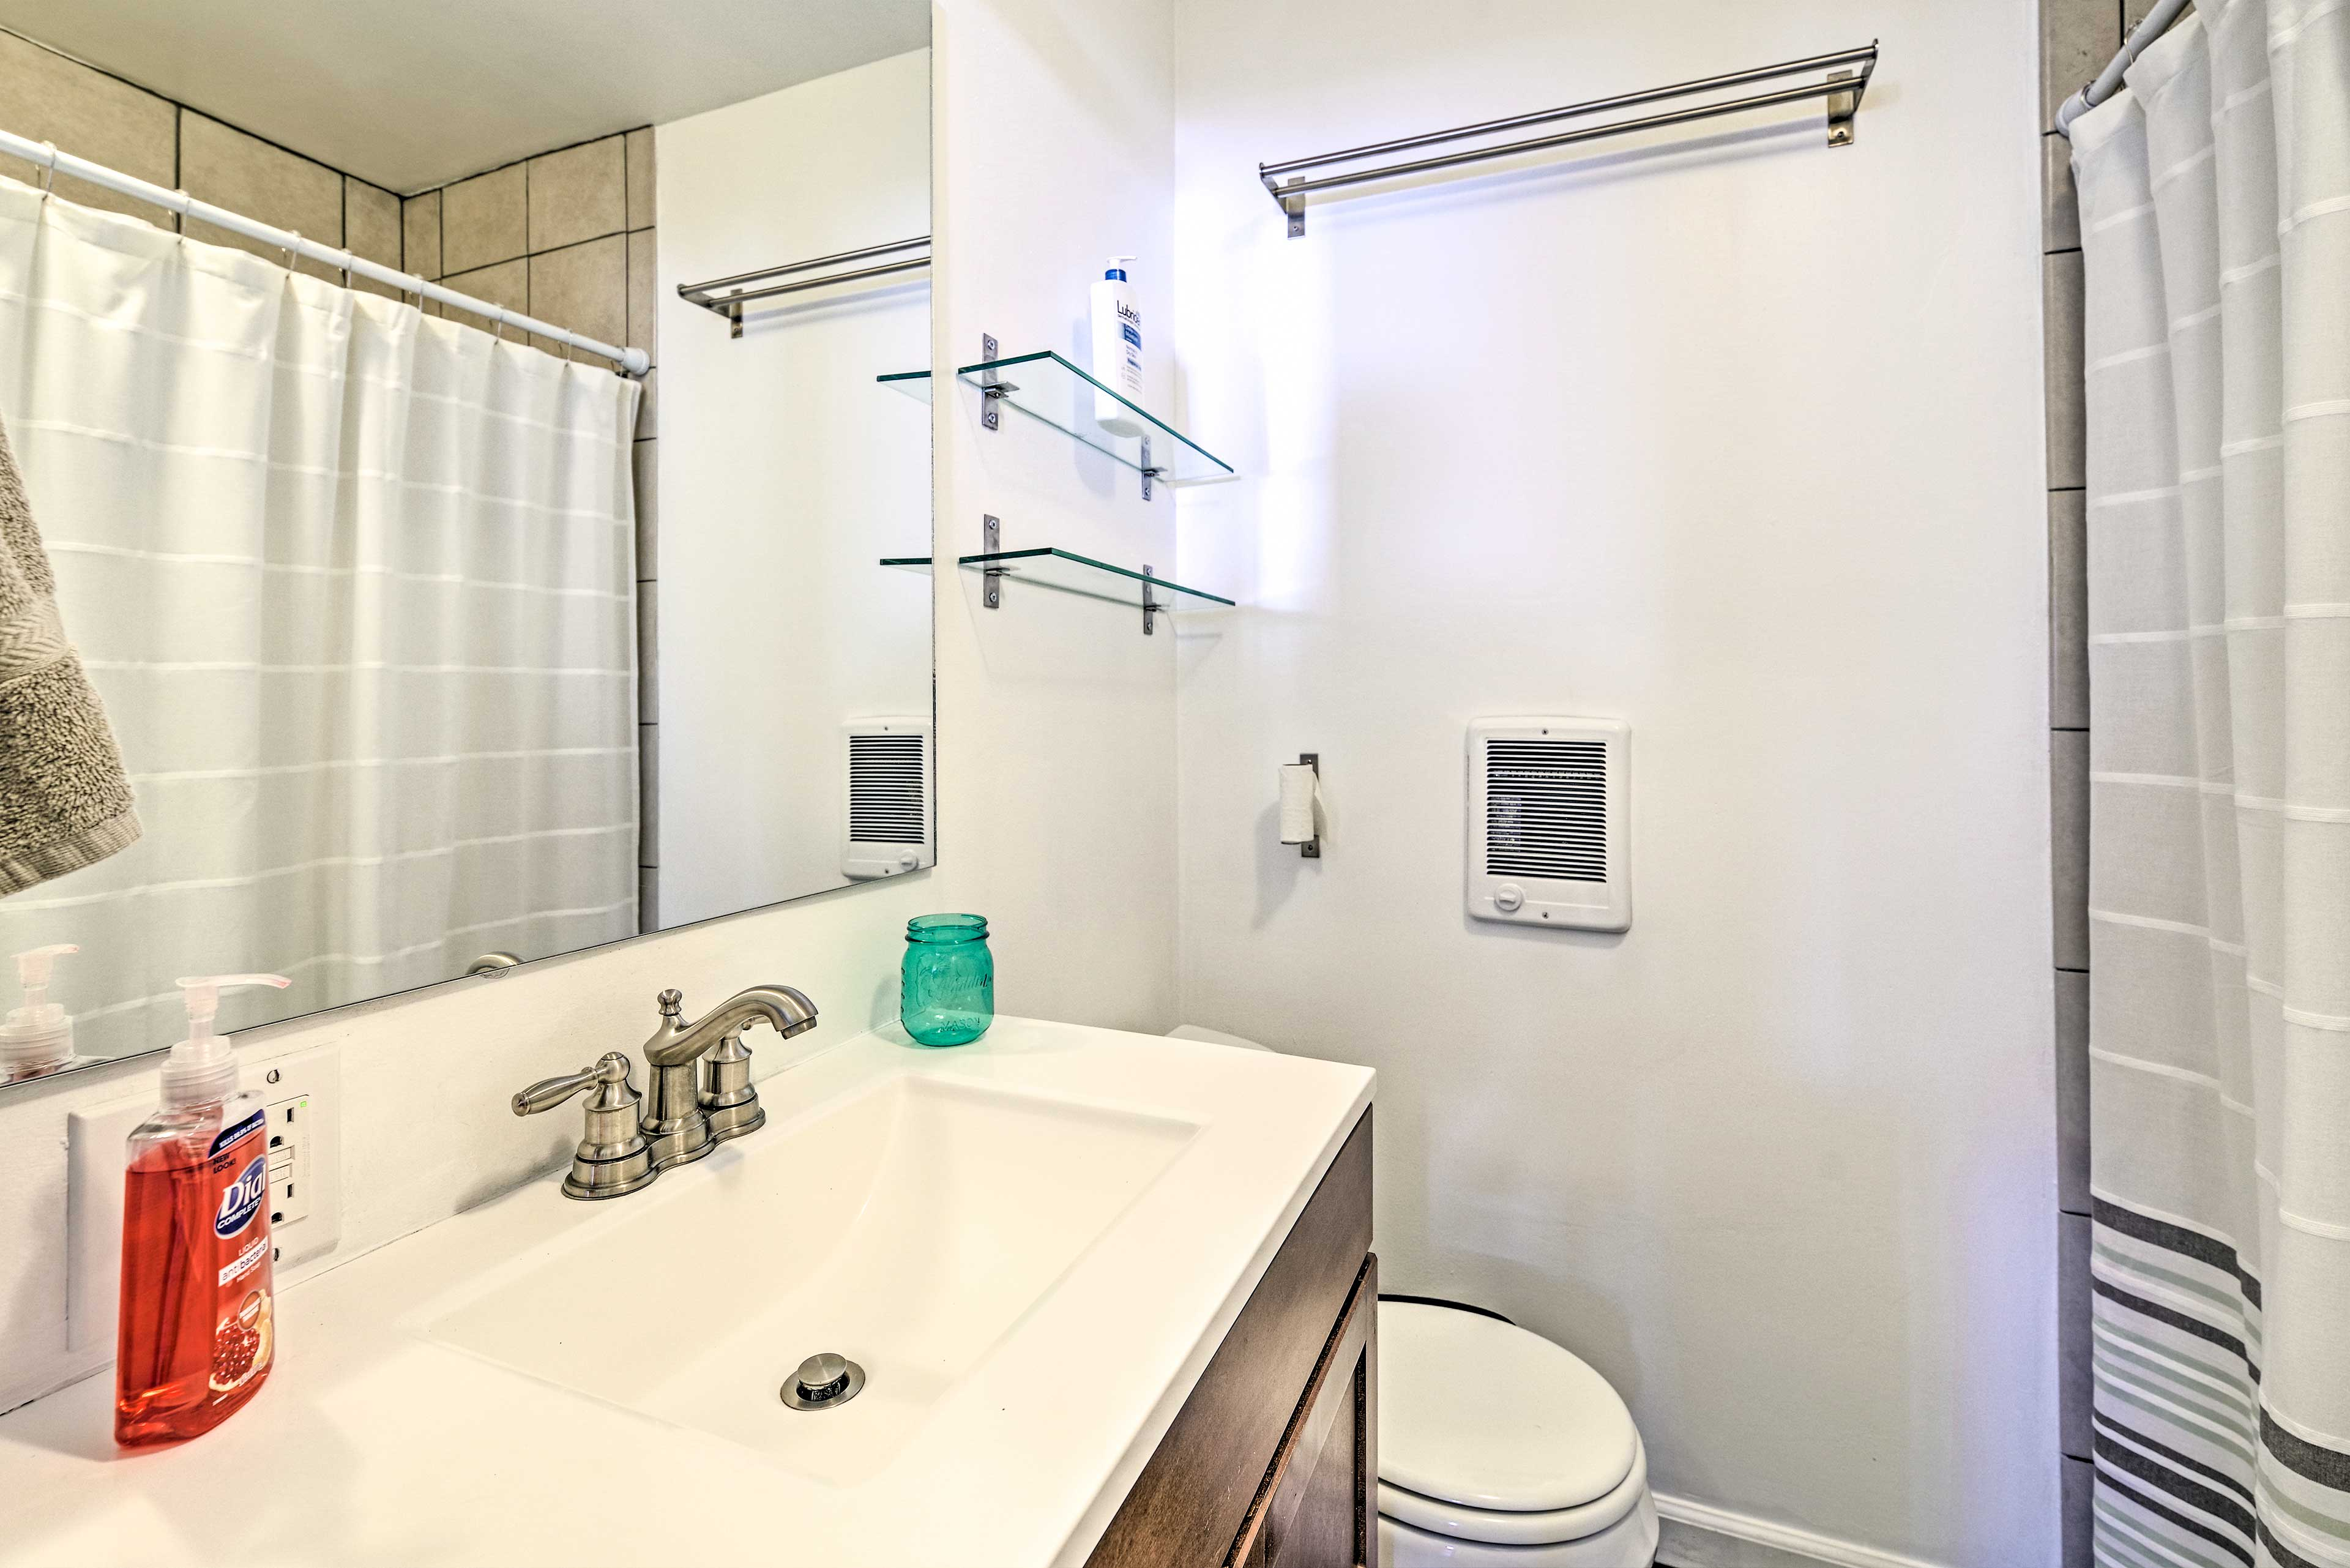 The second full bath is complete with a shower/tub combo.